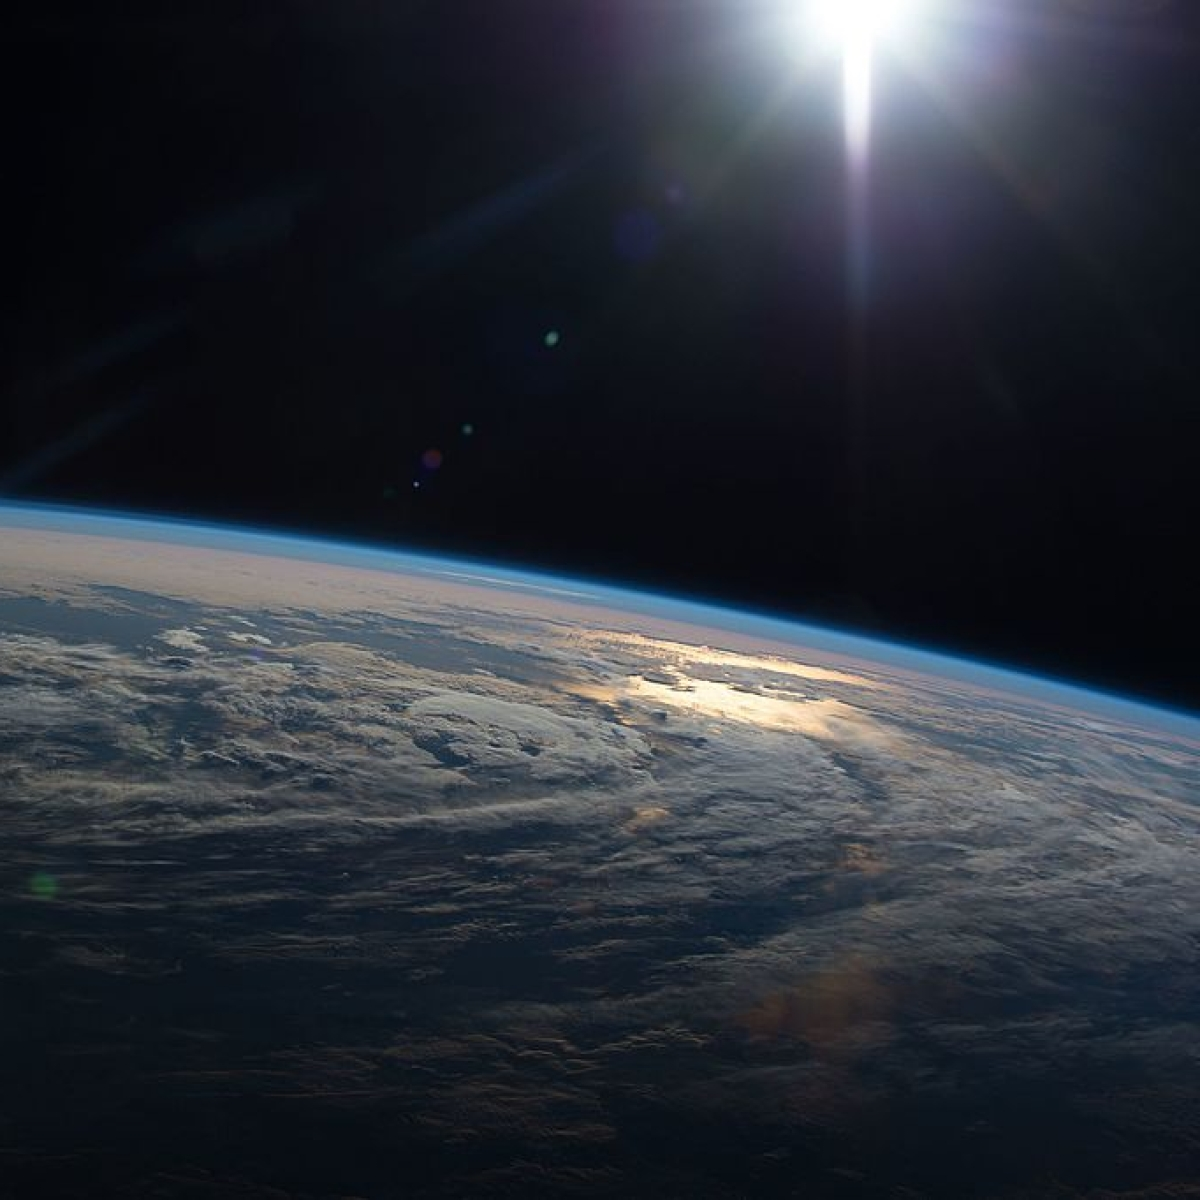 Early Earth's atmosphere was rich in carbon dioxide